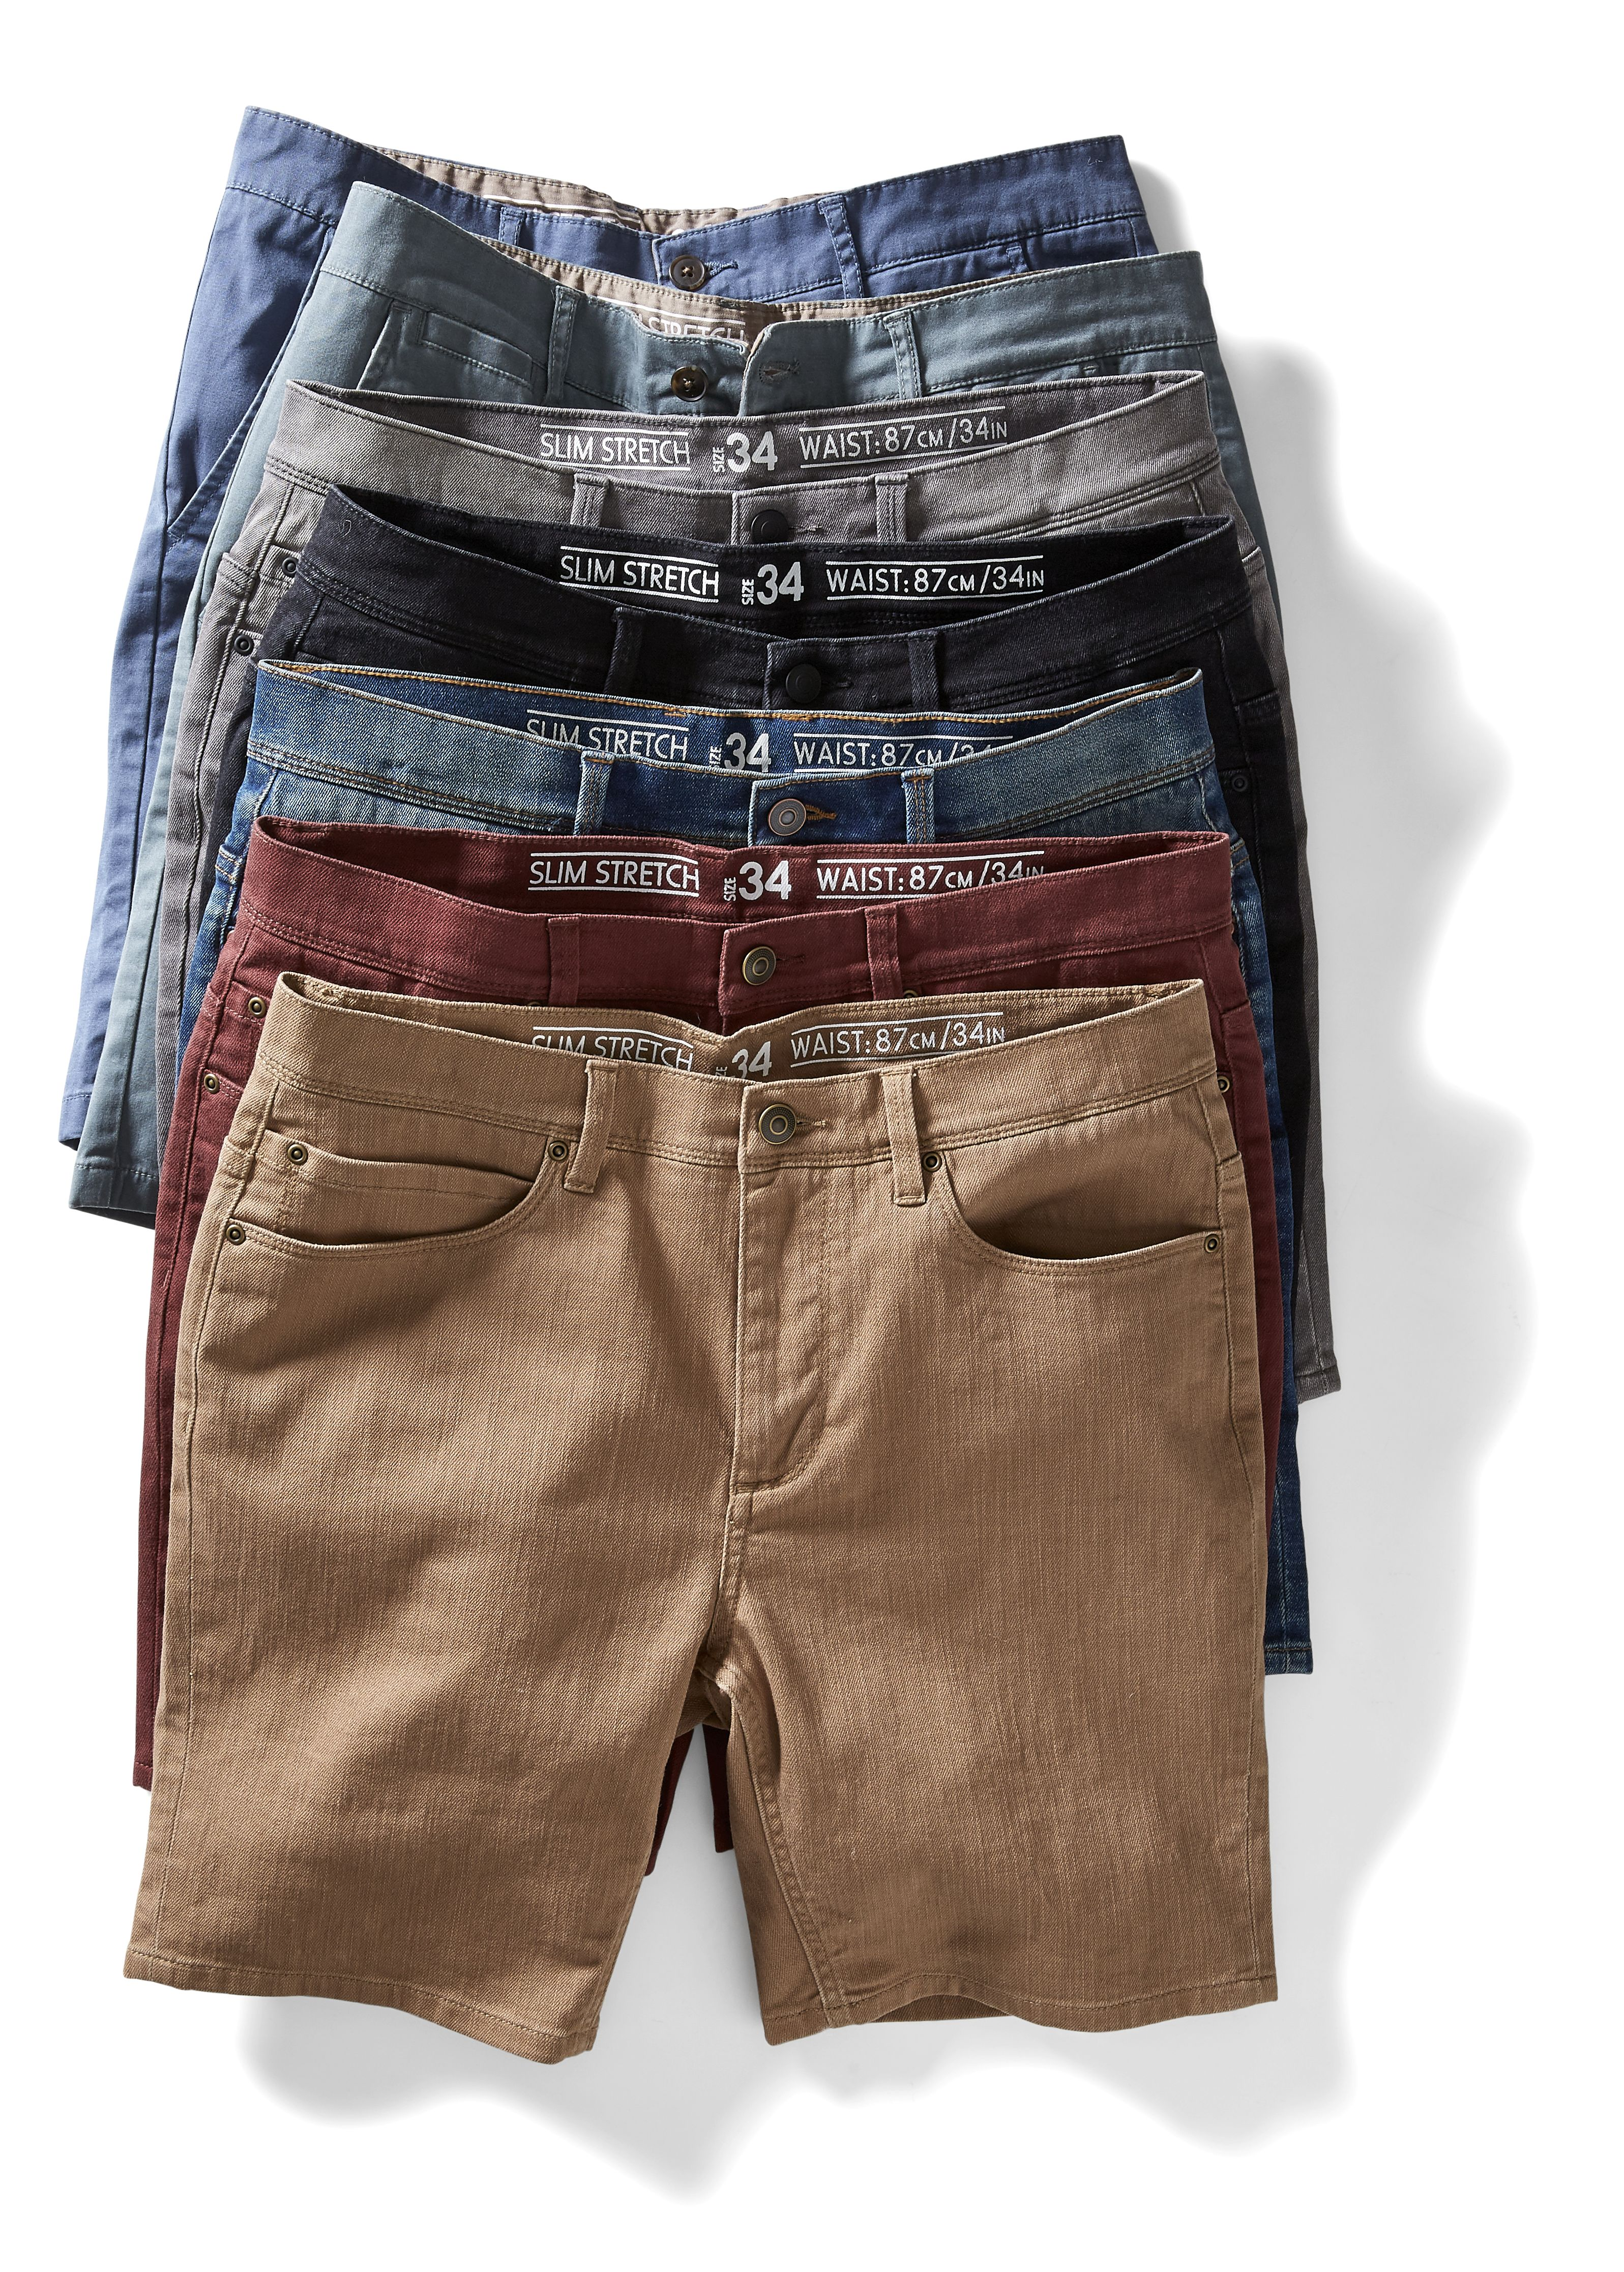 Kmart Men's Assorted Slim Fit Chino, sizes 30 - 40in, RRP$25.00